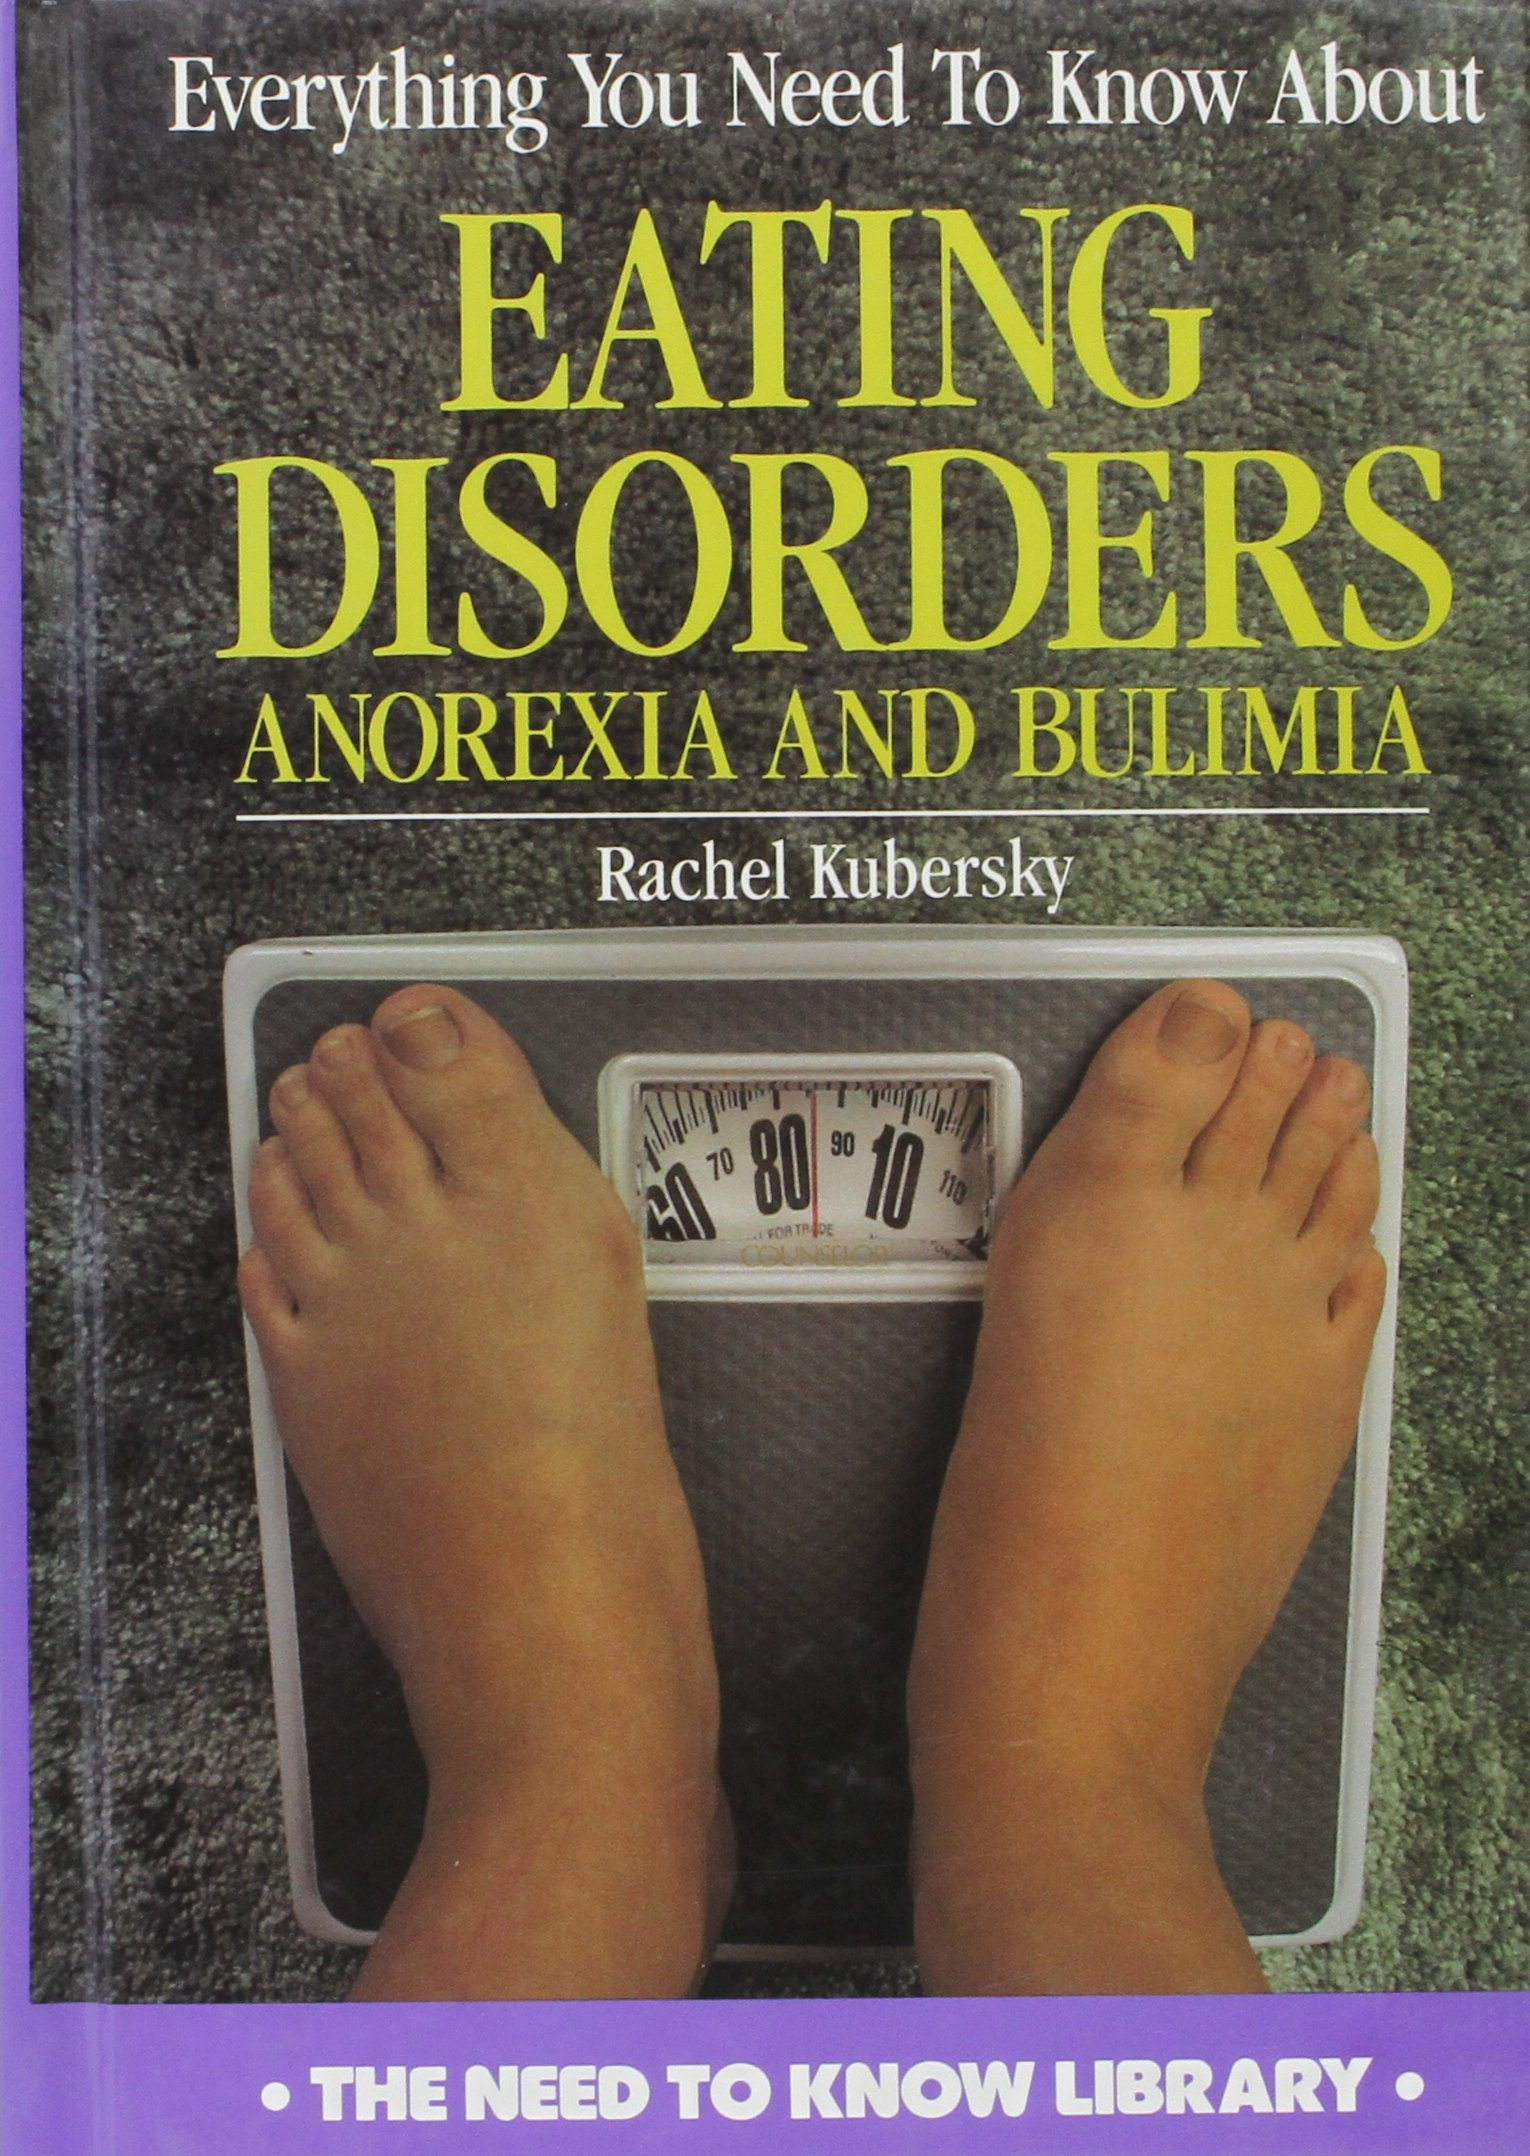 Everything You Need to Know About Eating Disorders: Anorexia and Bulimia (Need to Know Library)